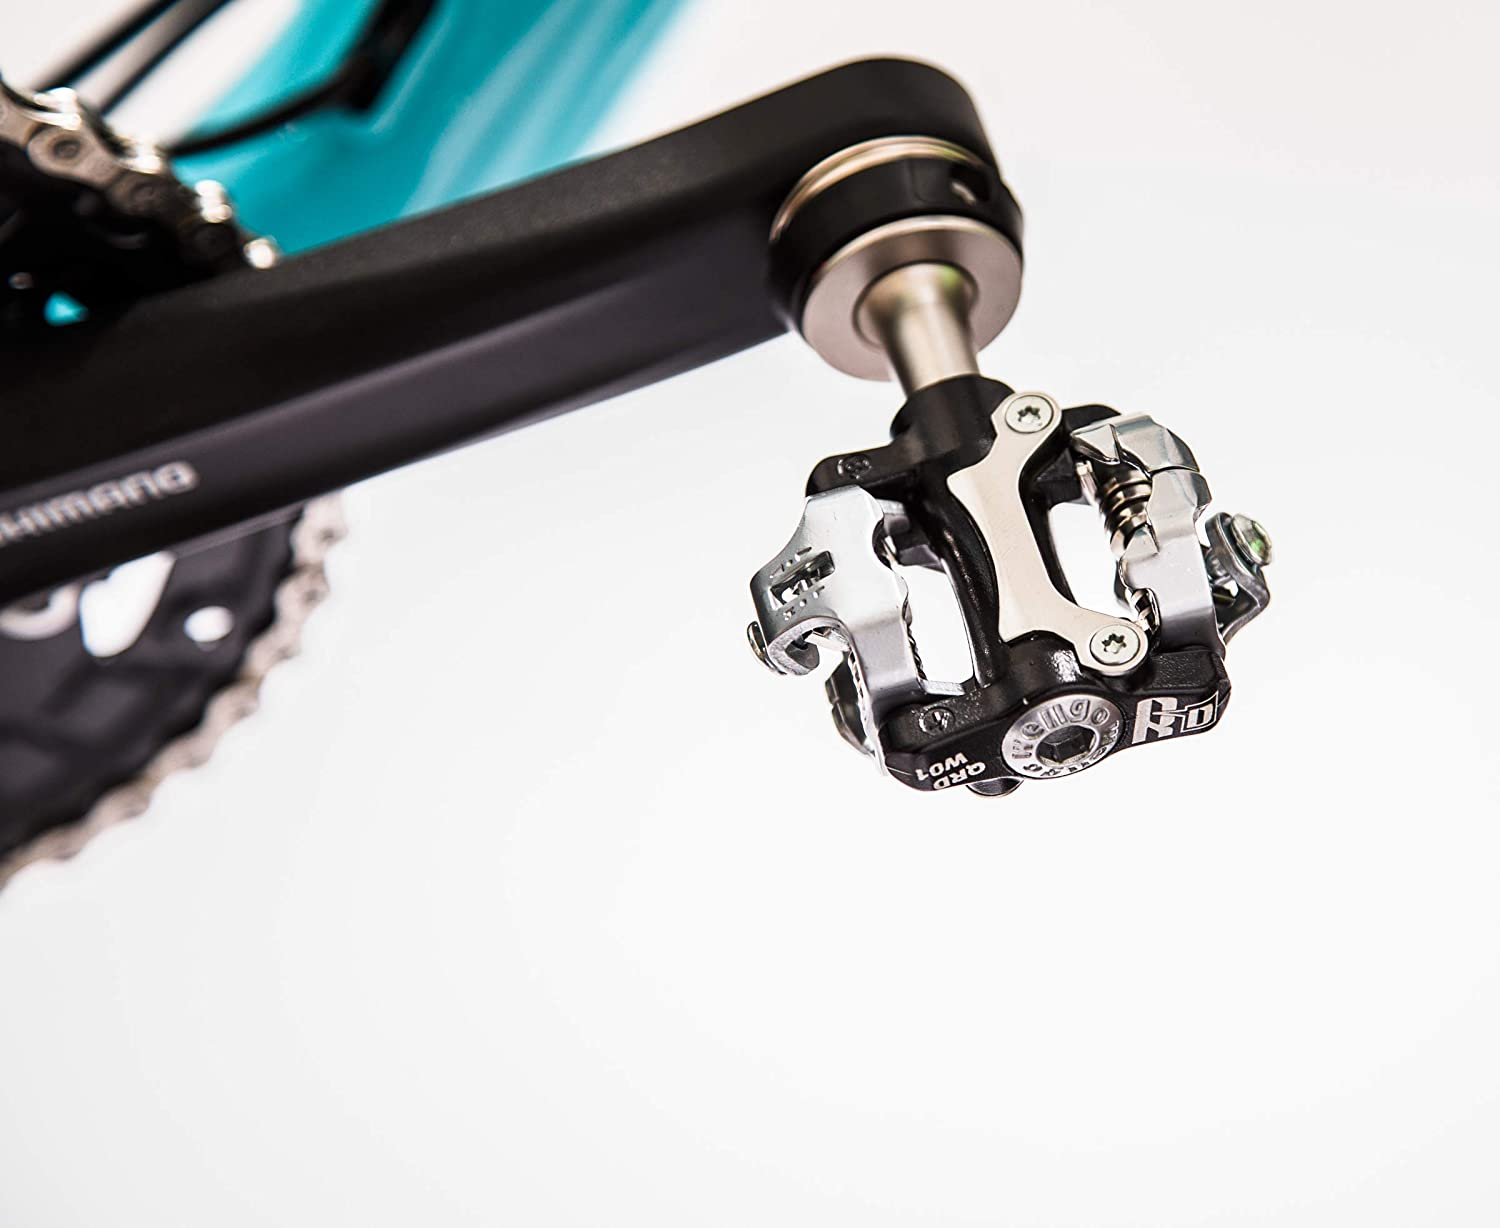 SPD Pedals (Pop-Off) - Pair, with 2nd-Generation Quick-Release Latch